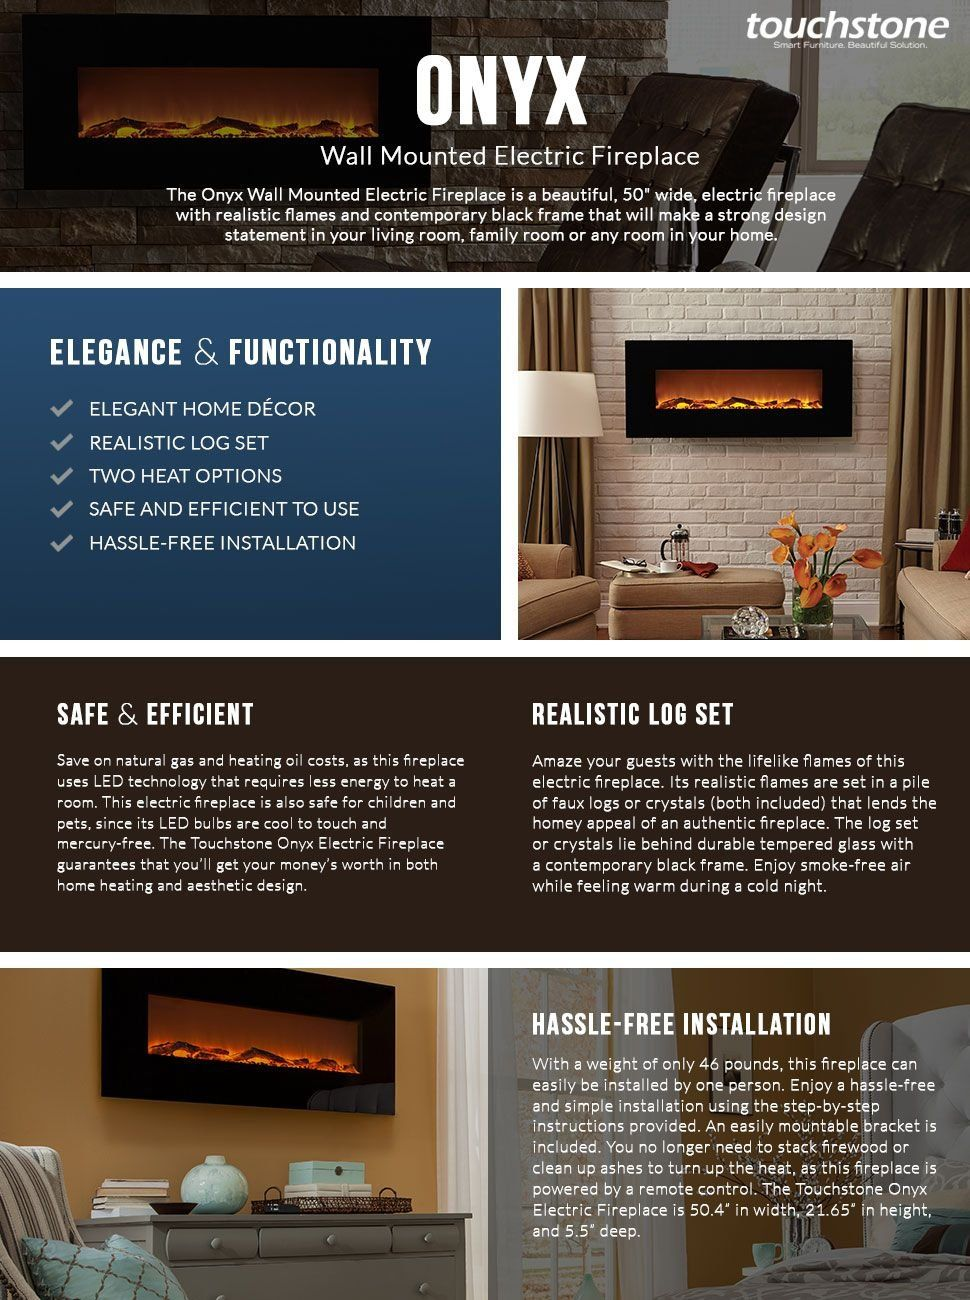 Touchstone 80001 Onyx Wall Hanging Electric Fireplace 50 Inch Wide